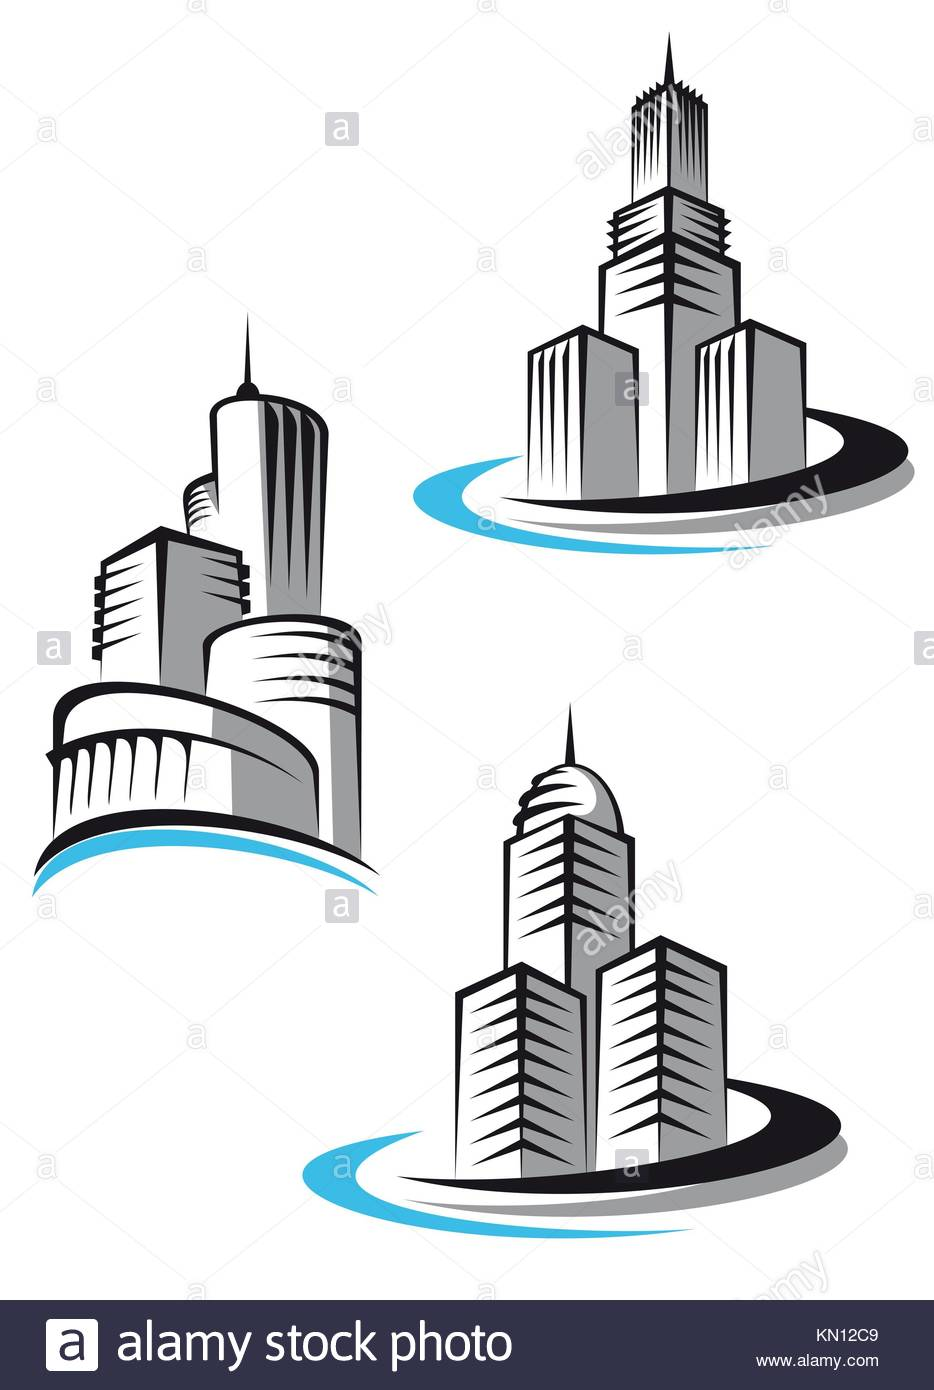 Skyscrapers and real estate symbols for design and decorate stock skyscrapers and real estate symbols for design and decorate biocorpaavc Image collections